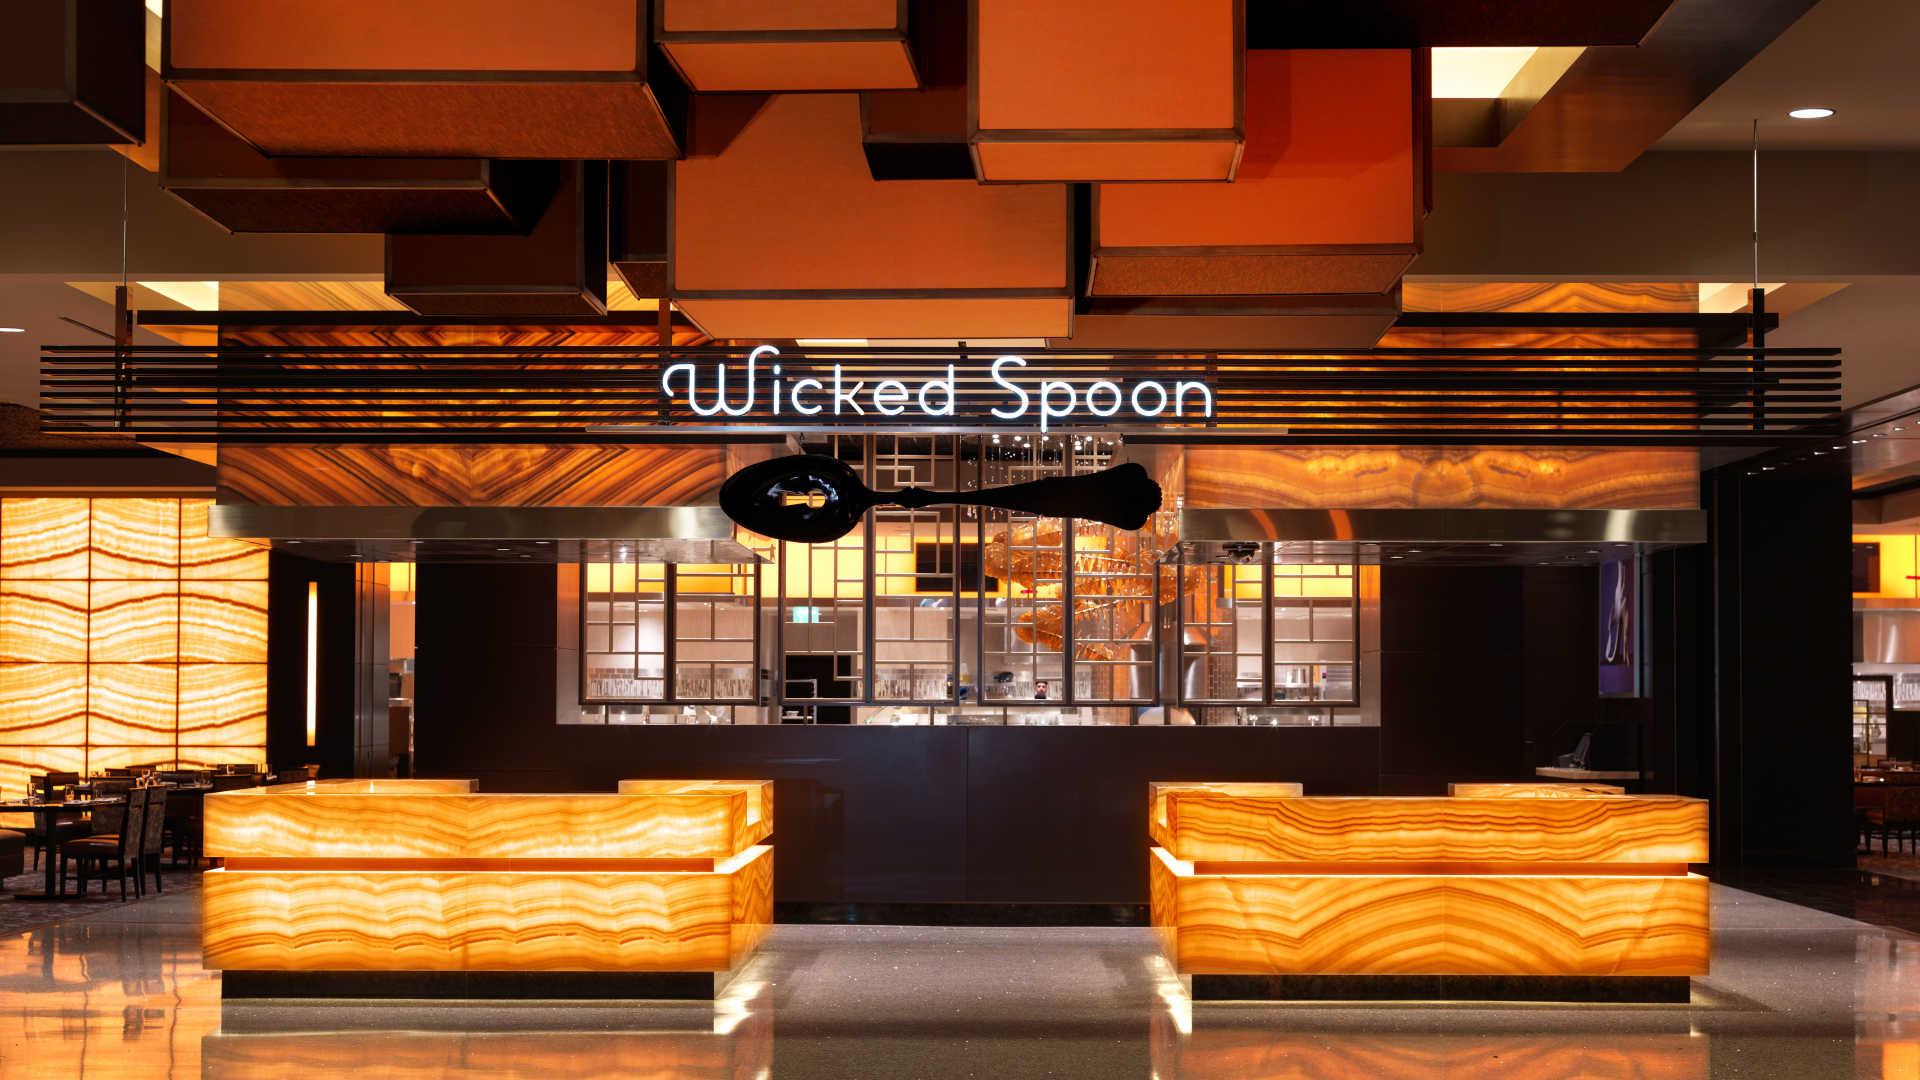 Wicked Spoon